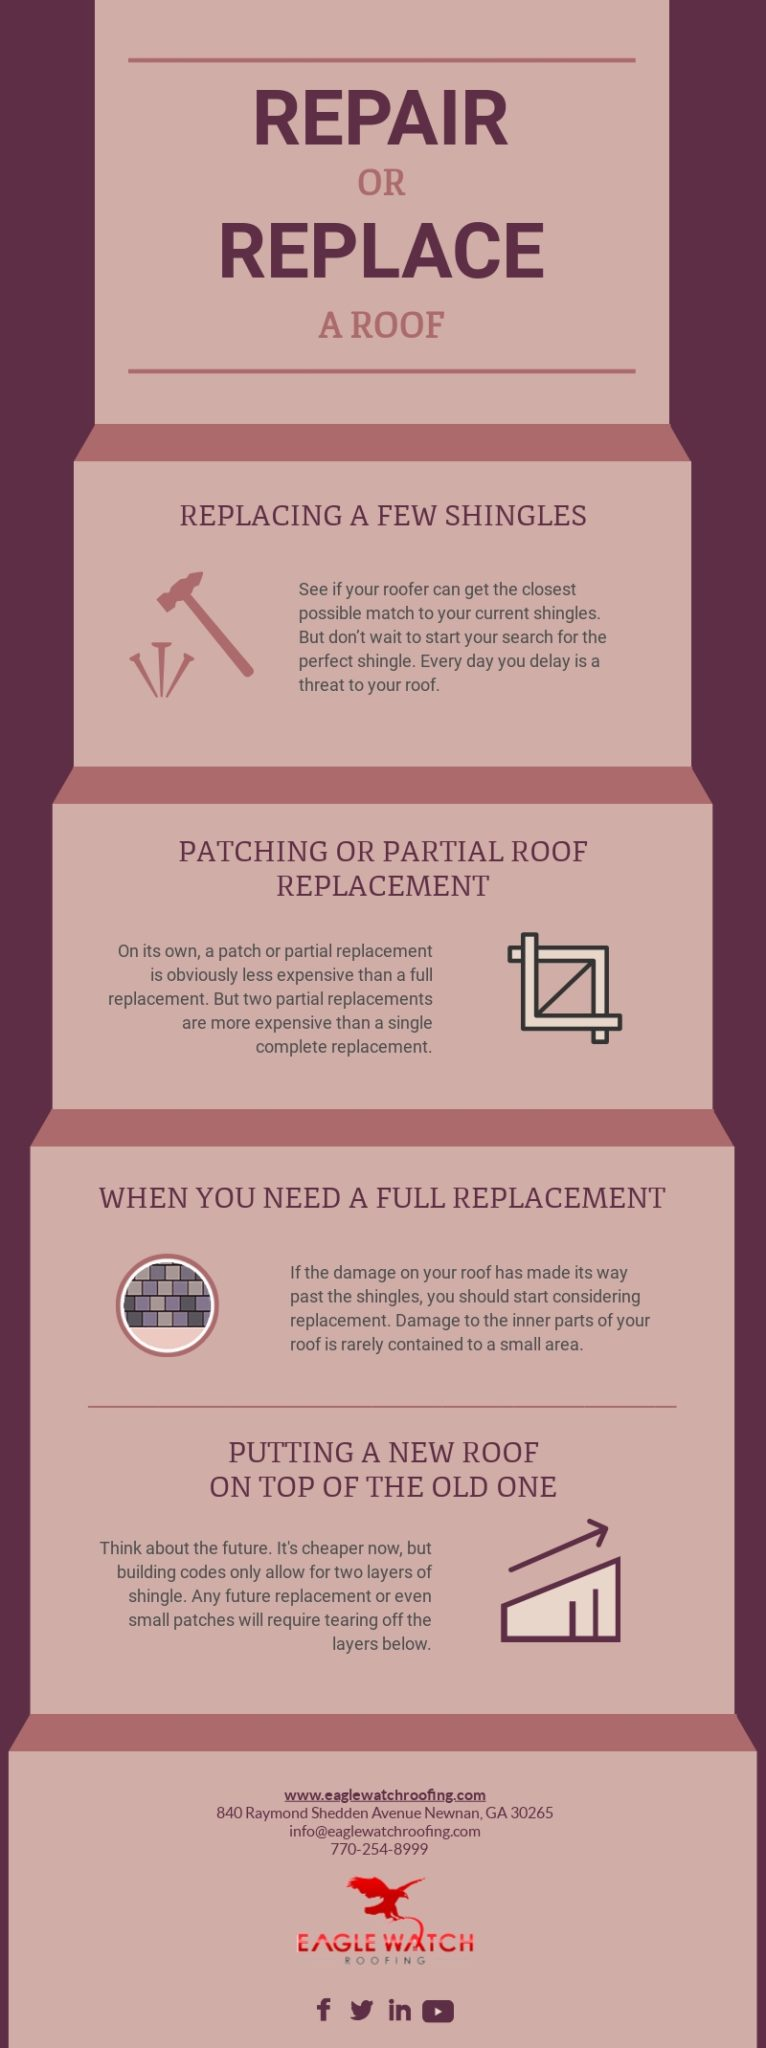 Repair or Replace a Roof [infographic]